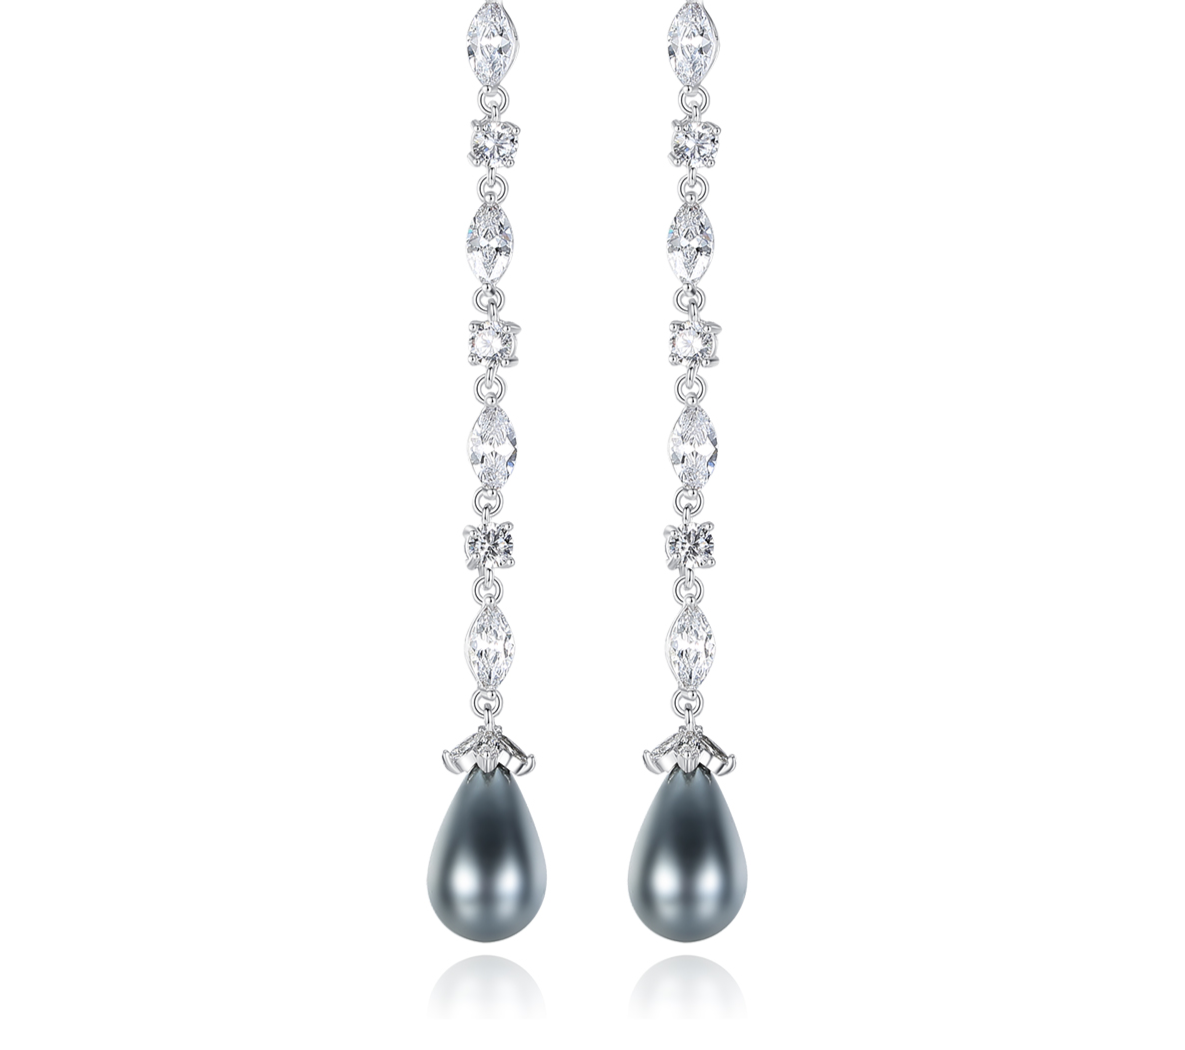 Grey Freshwater Pearl Drop Rodium Plated Earrings